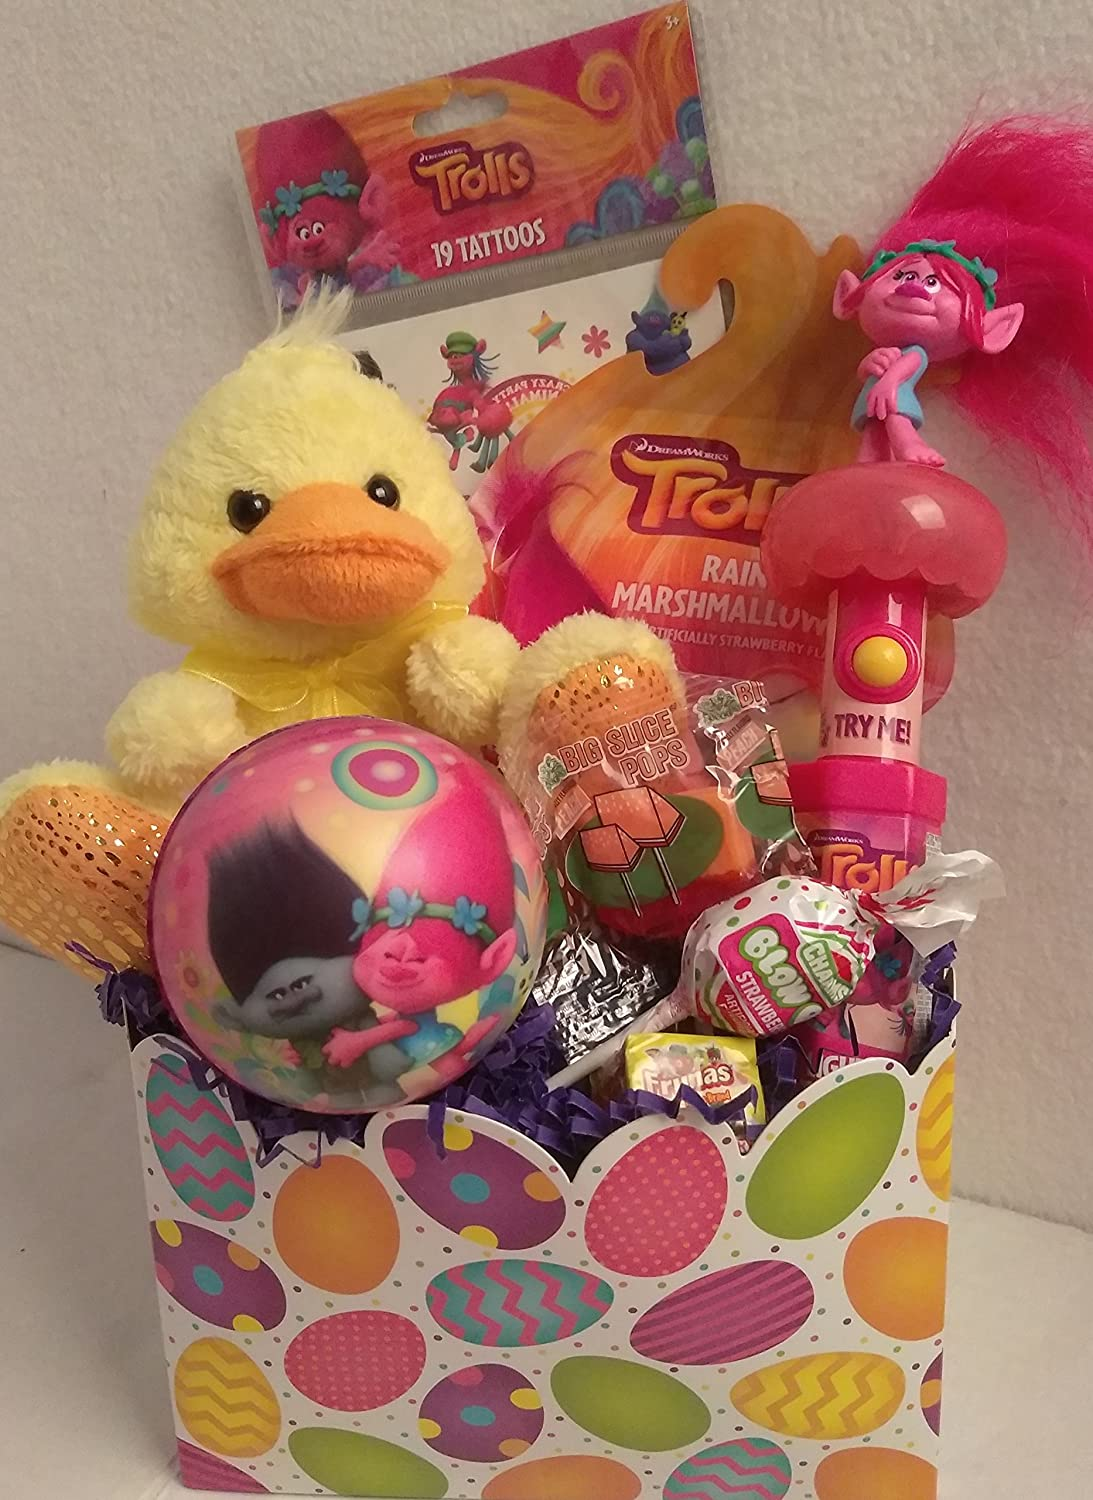 Happy Girls Figure Easter Basket Kids Toddlers Gift Children Pre Made Eggs Goodies Candy Plush Trolls